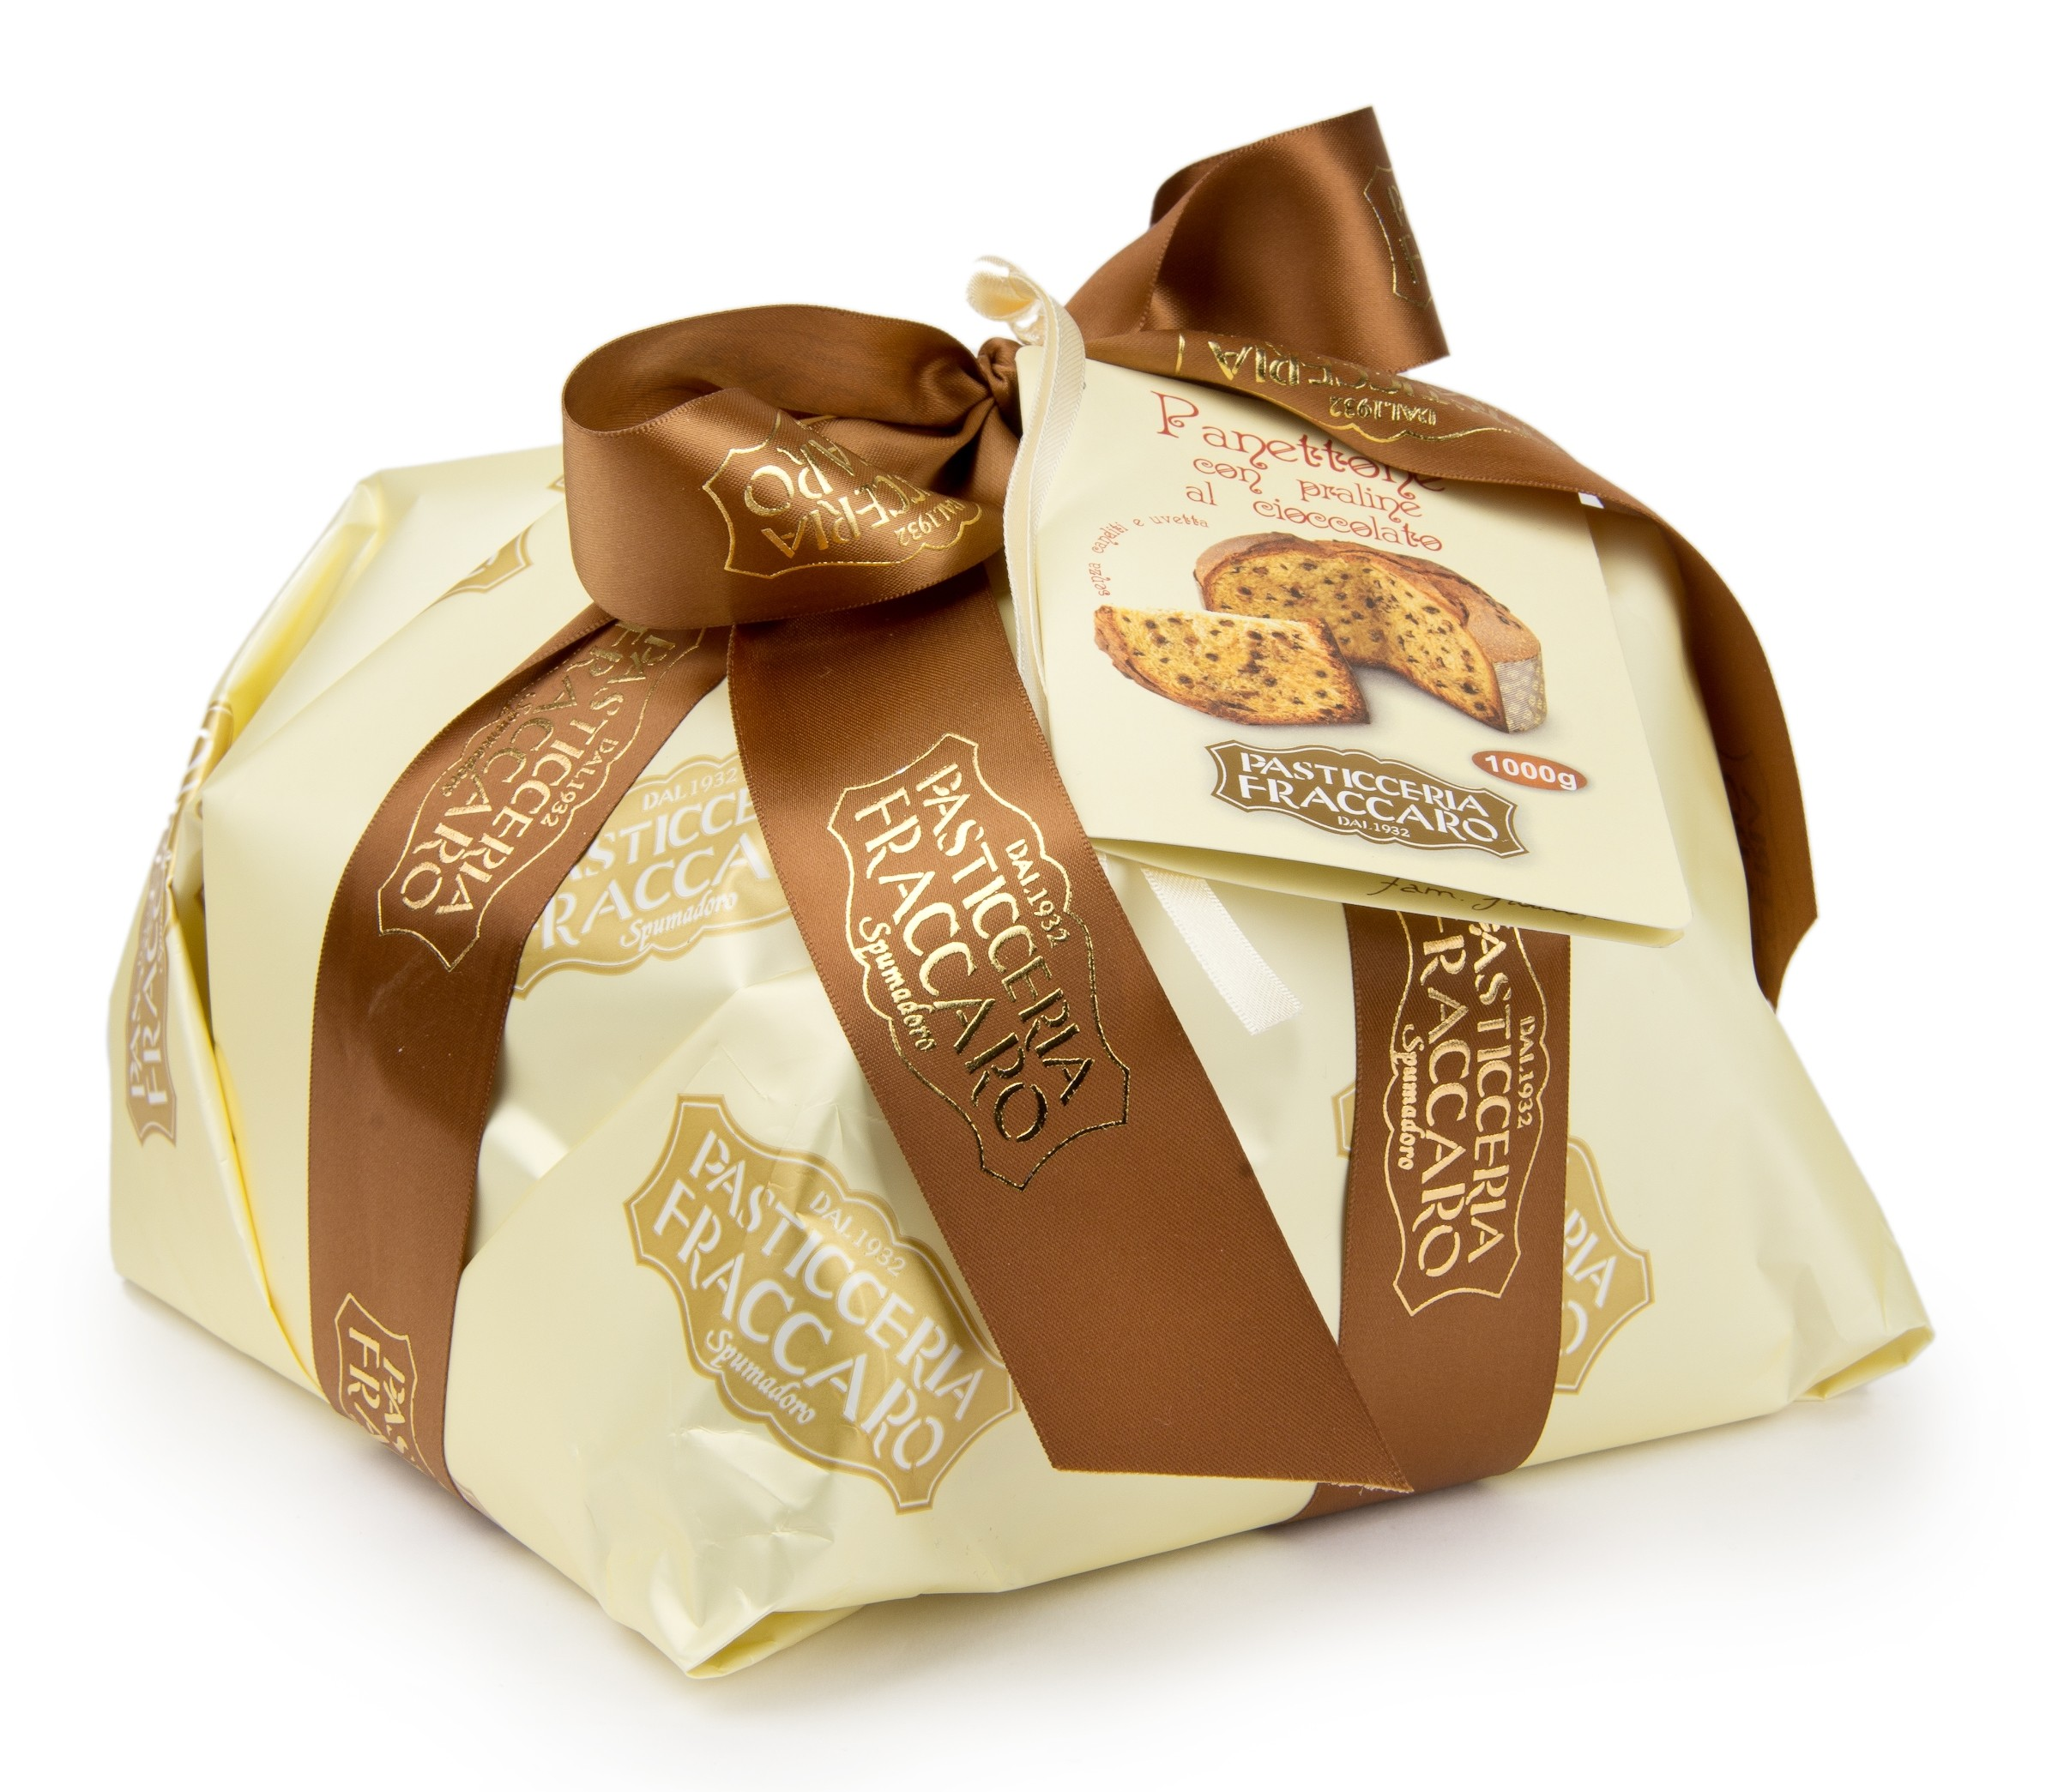 Pasticceria Fraccaro - Hand Wrapping Line - Panettone with ...